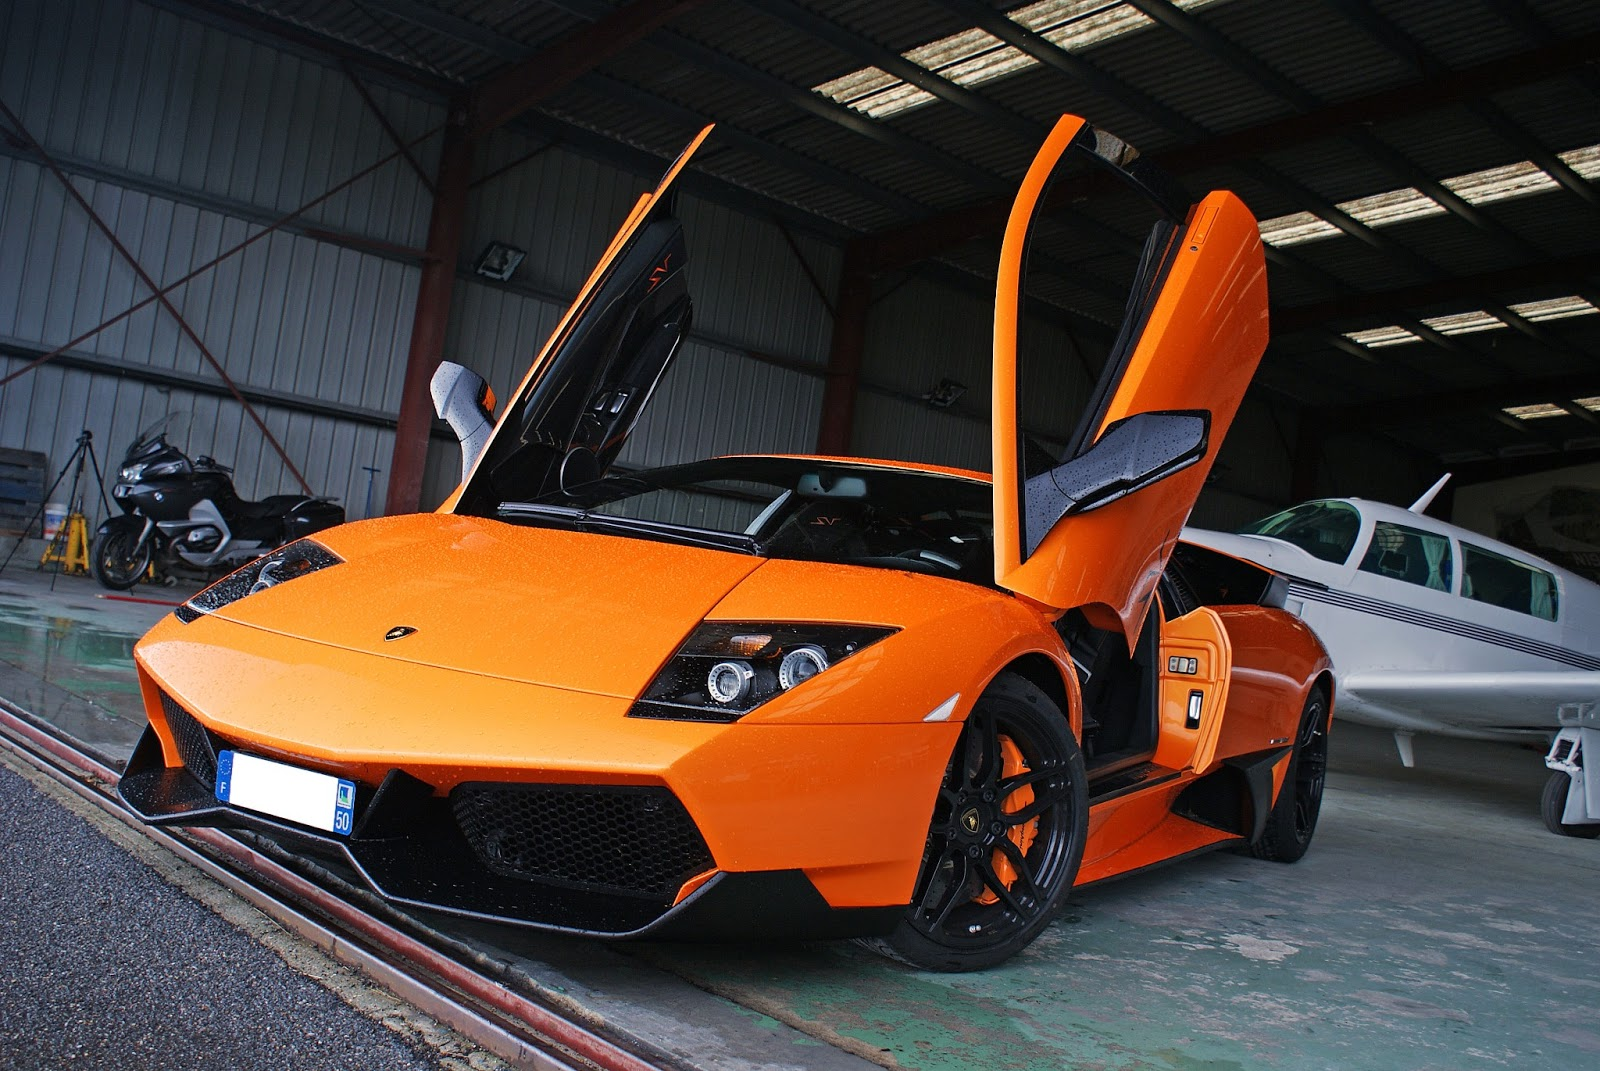 Orange Lamborghini Murcielago LP640 Sound! - YouTube